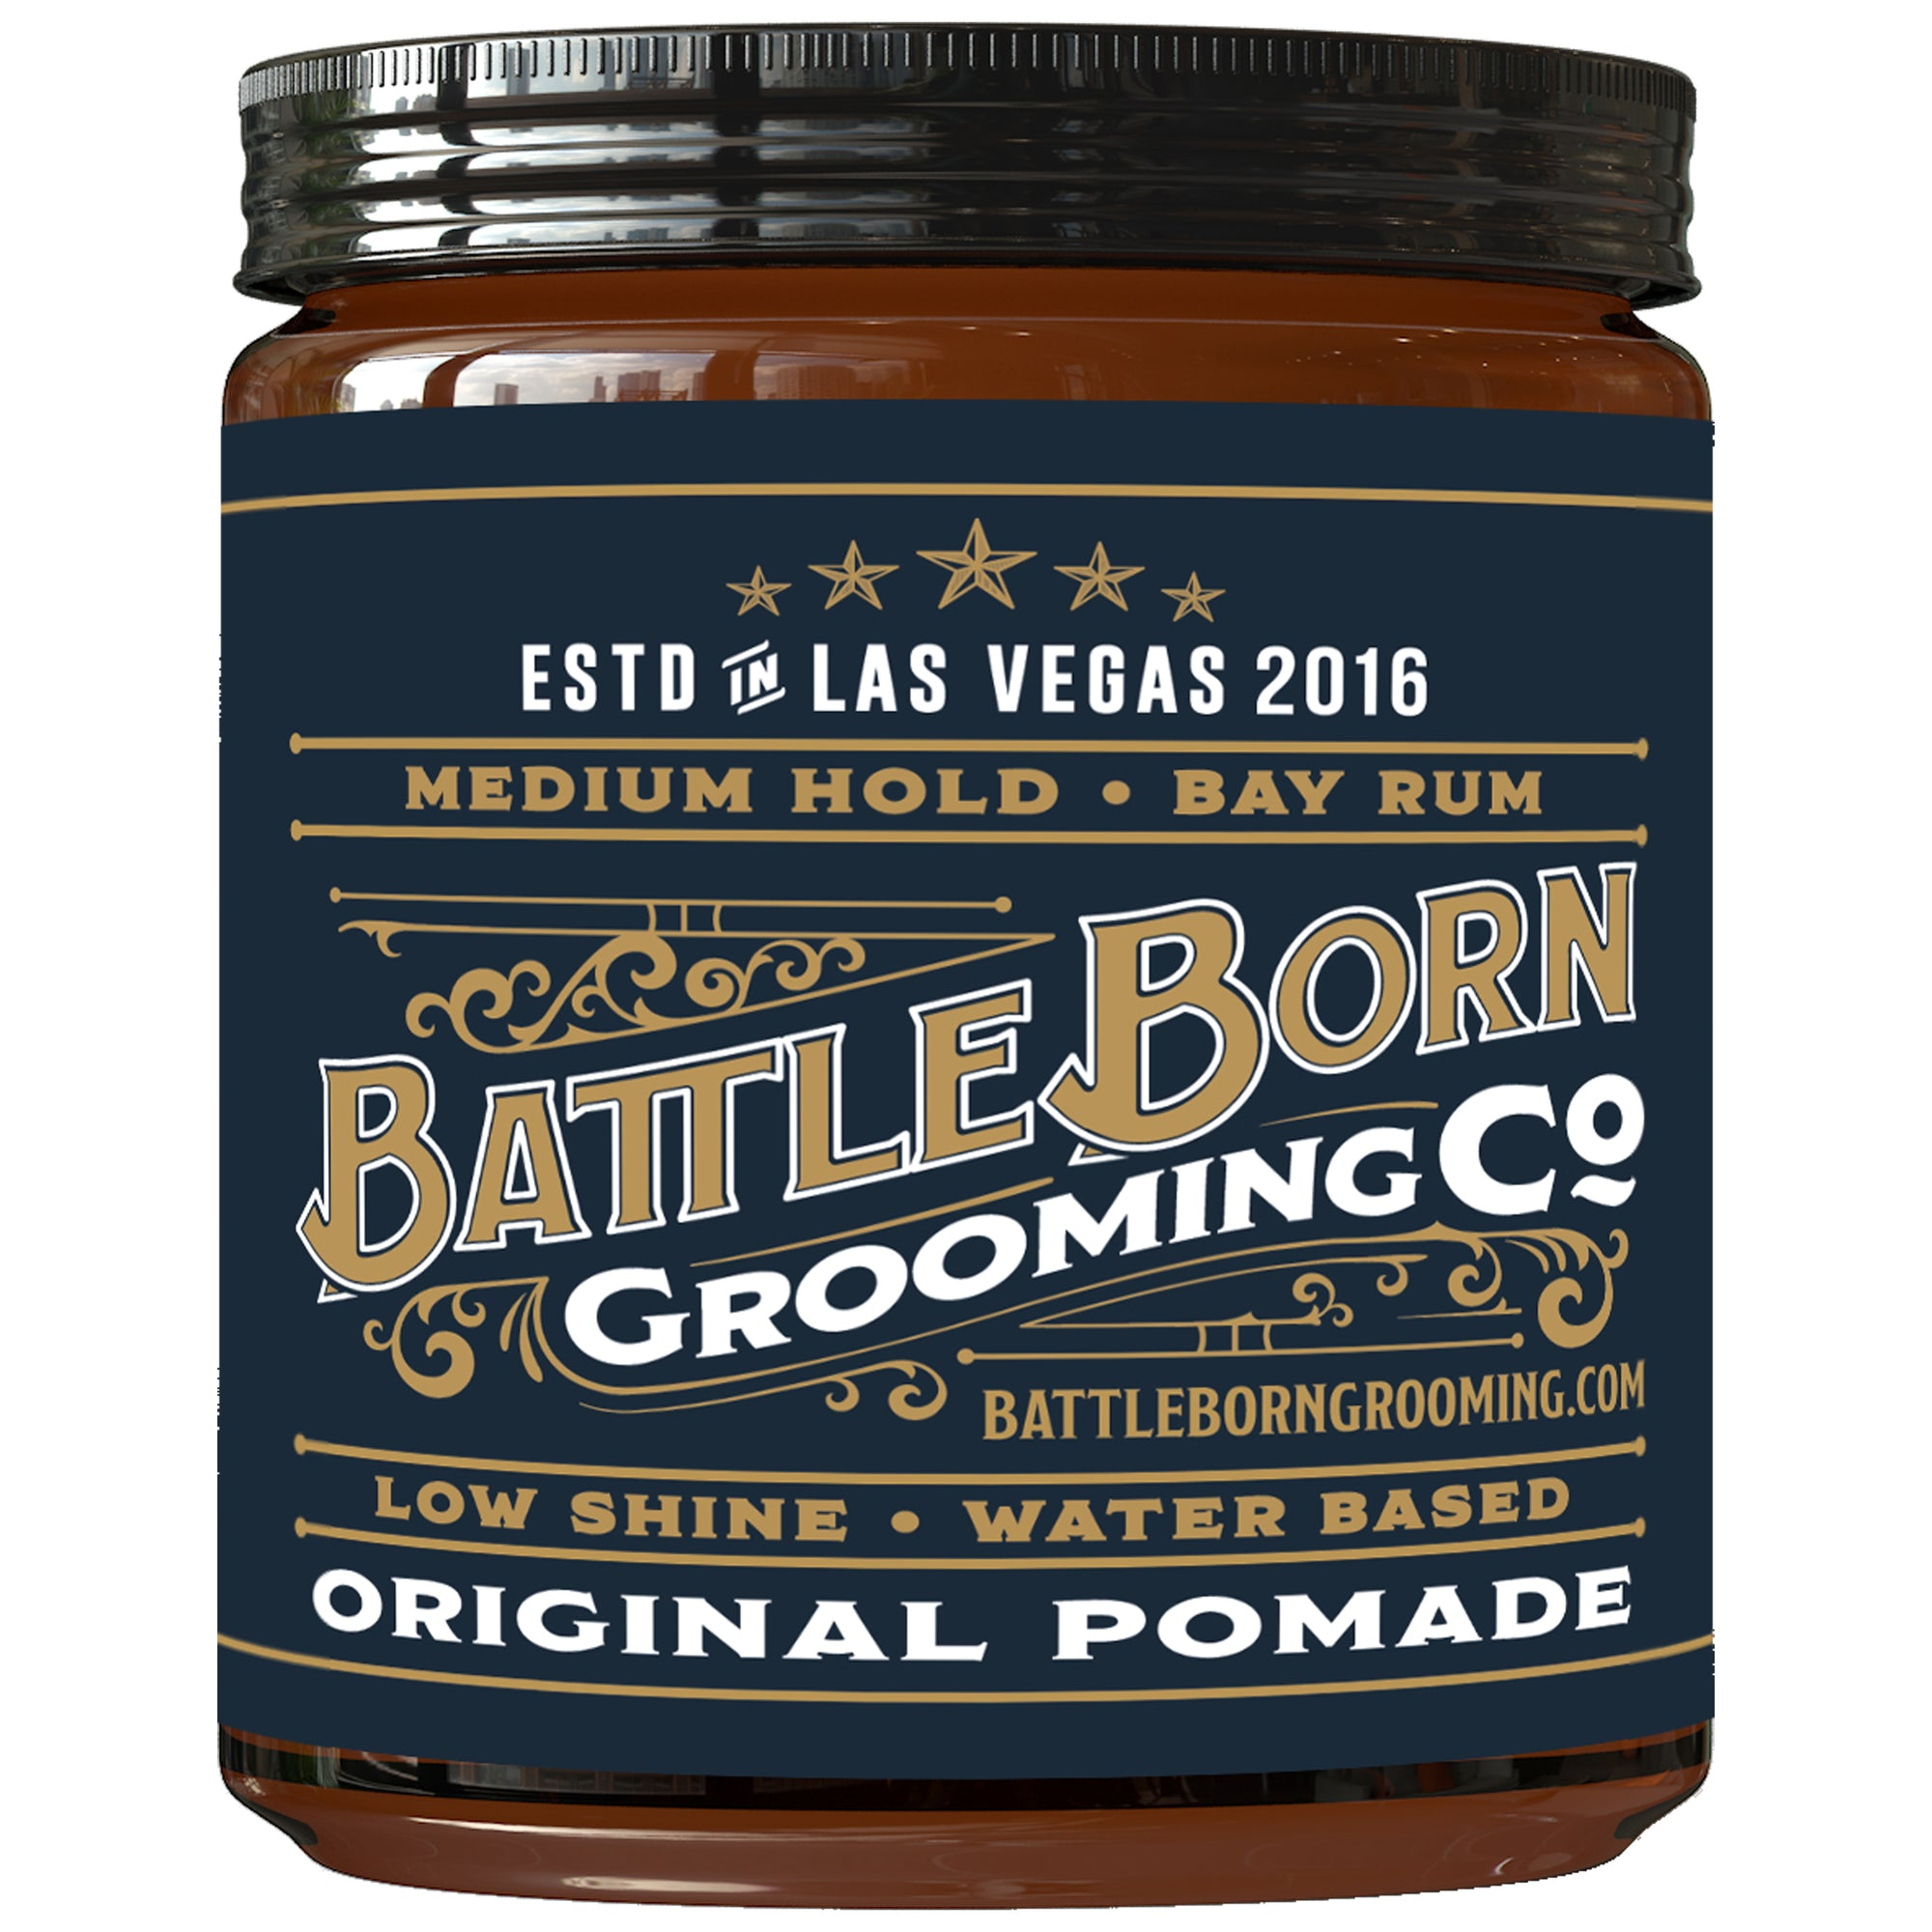 Original Pomade - (Bay Rum, 4 oz)